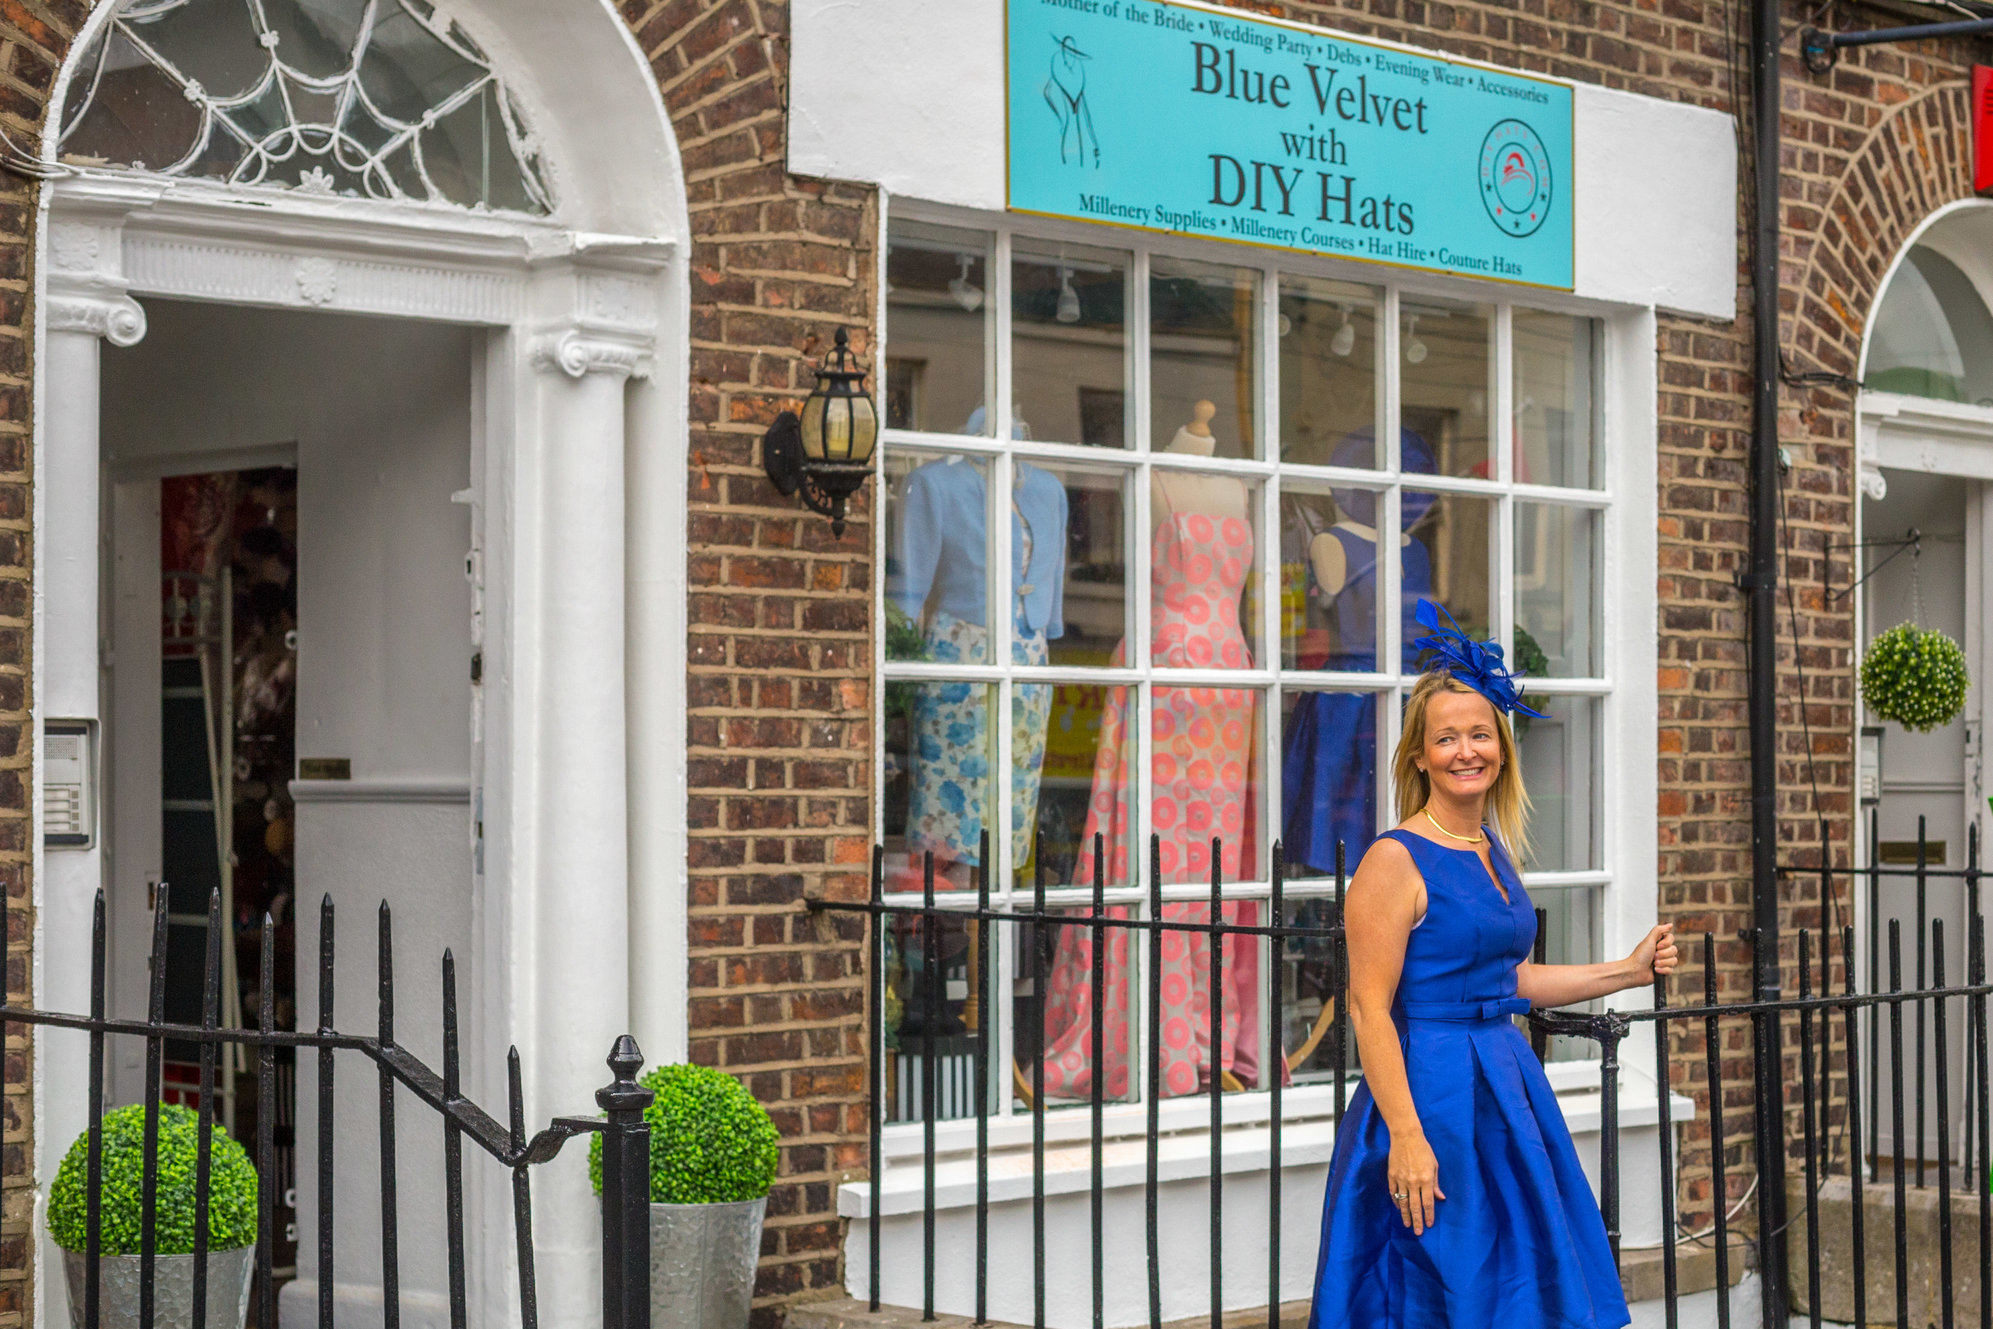 Blue Velvet opens in Catherine Street